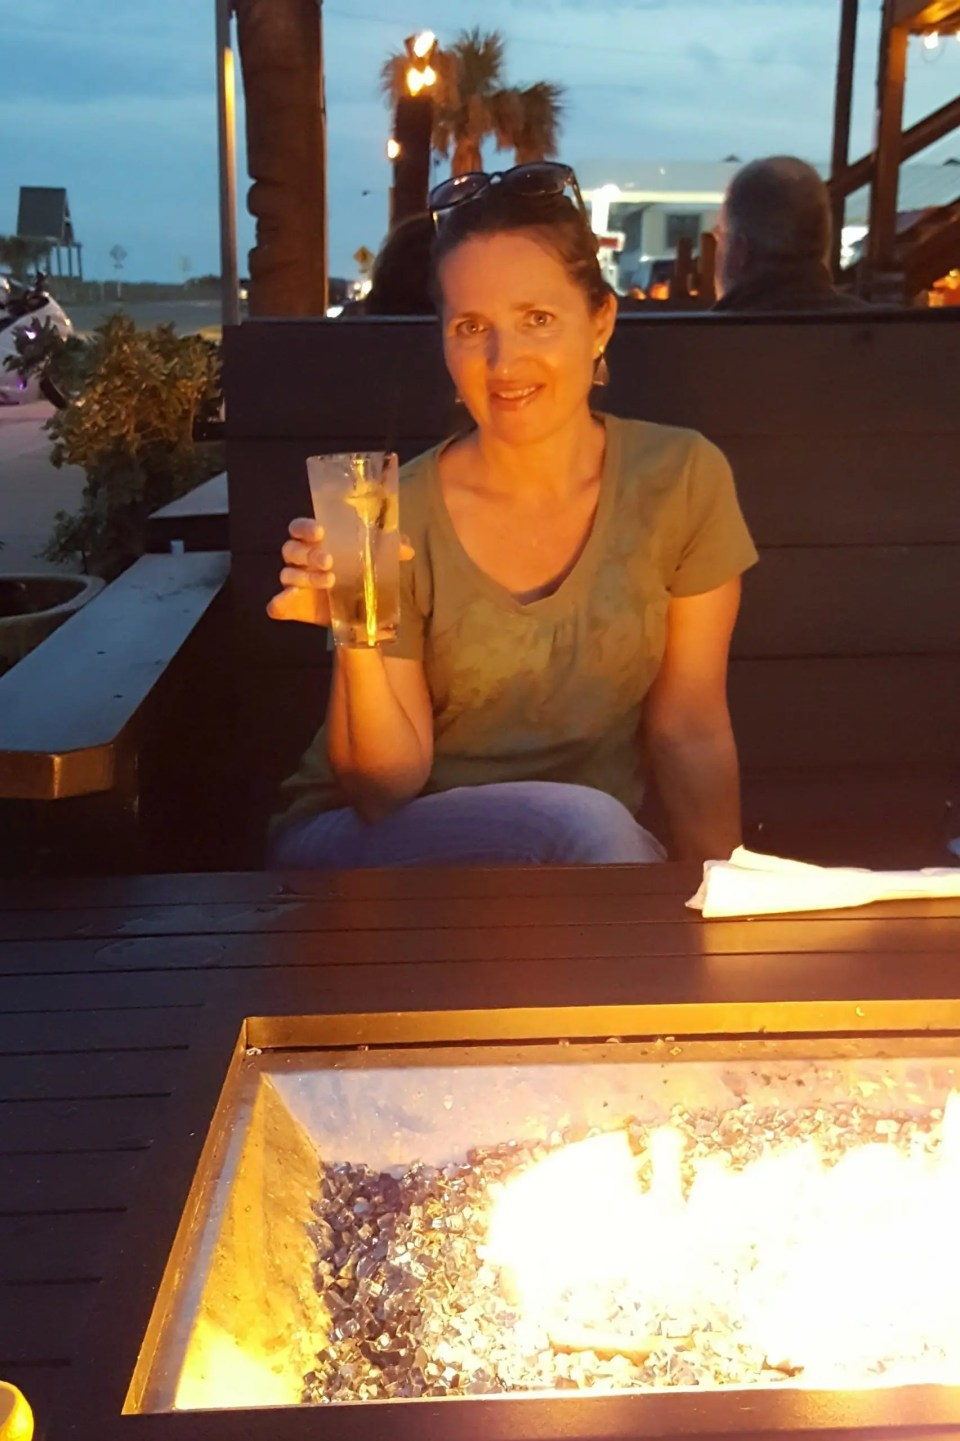 a woman sitting at an outdoor table drinking a beverage in front of a table top fire pit